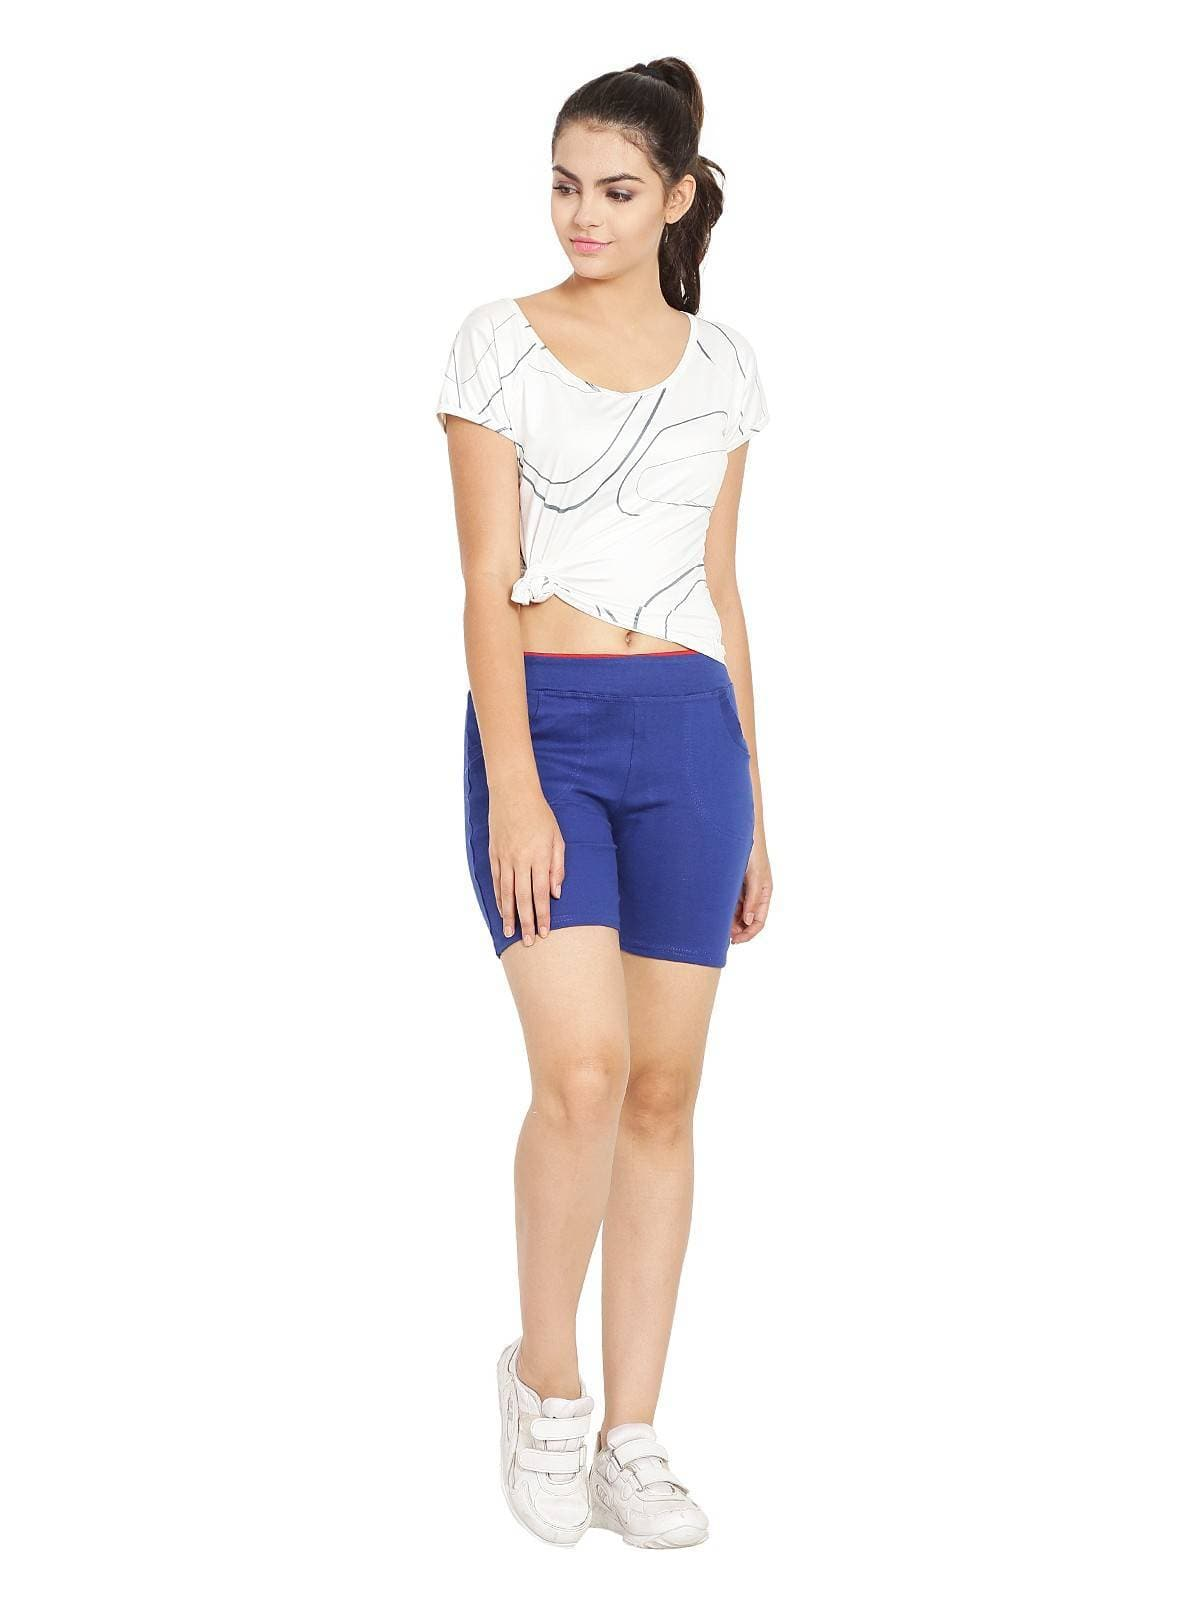 Asmaani Royal Blue Color Short Pant with Two Side Pockets